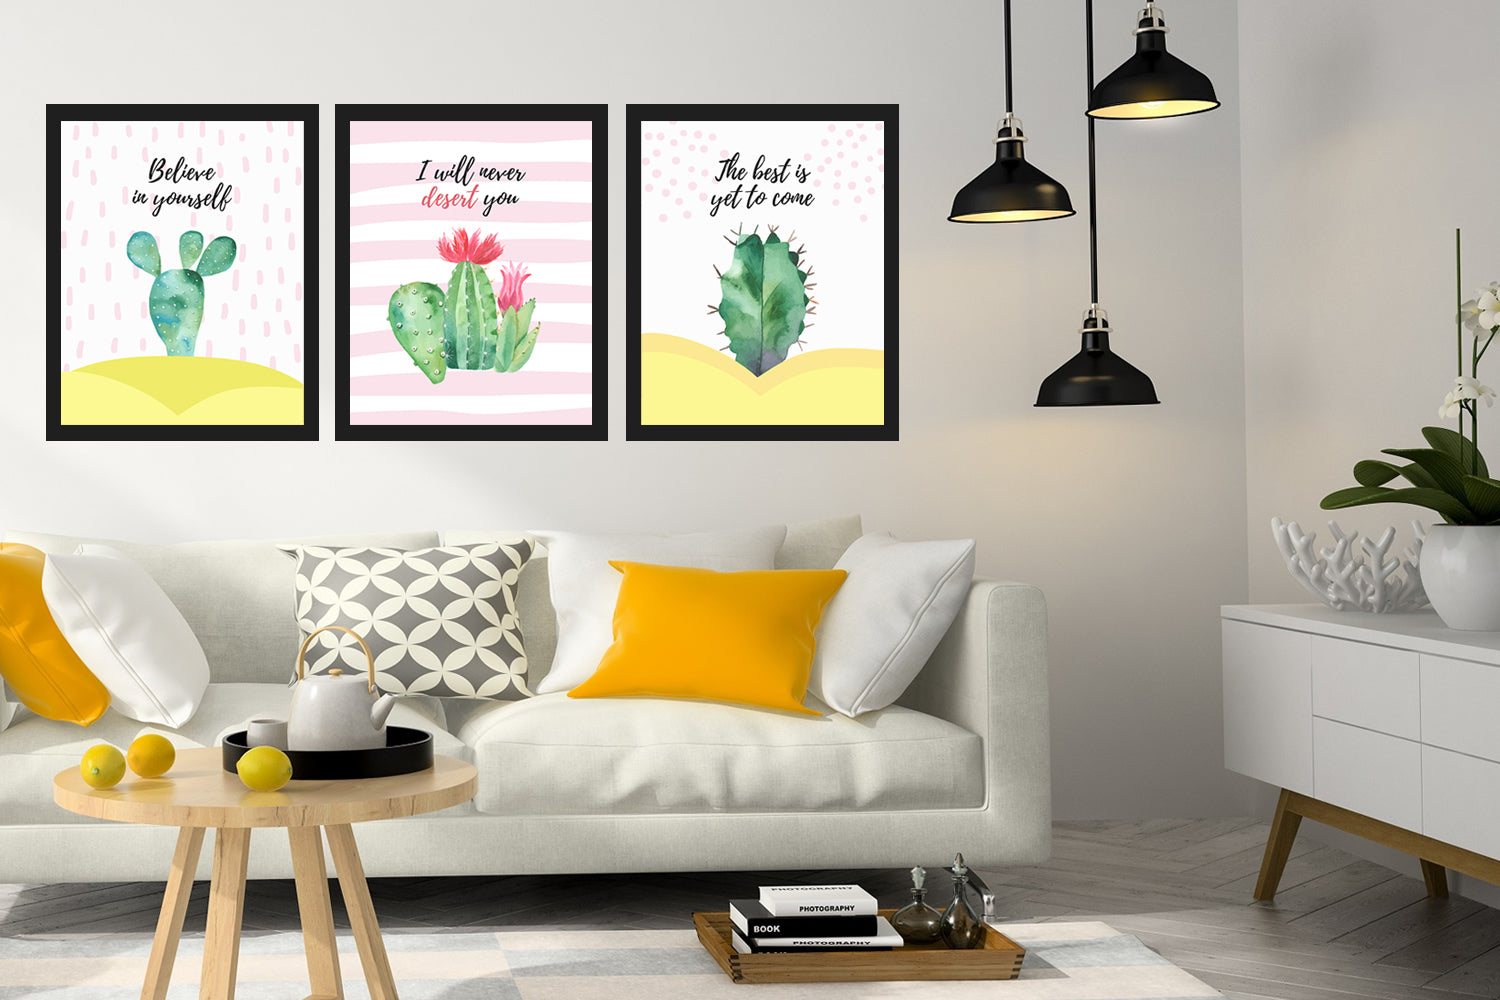 I Will Never Desert You, Cactus decor, Cactus printable set, Pastel cactus art, Digital art prints,